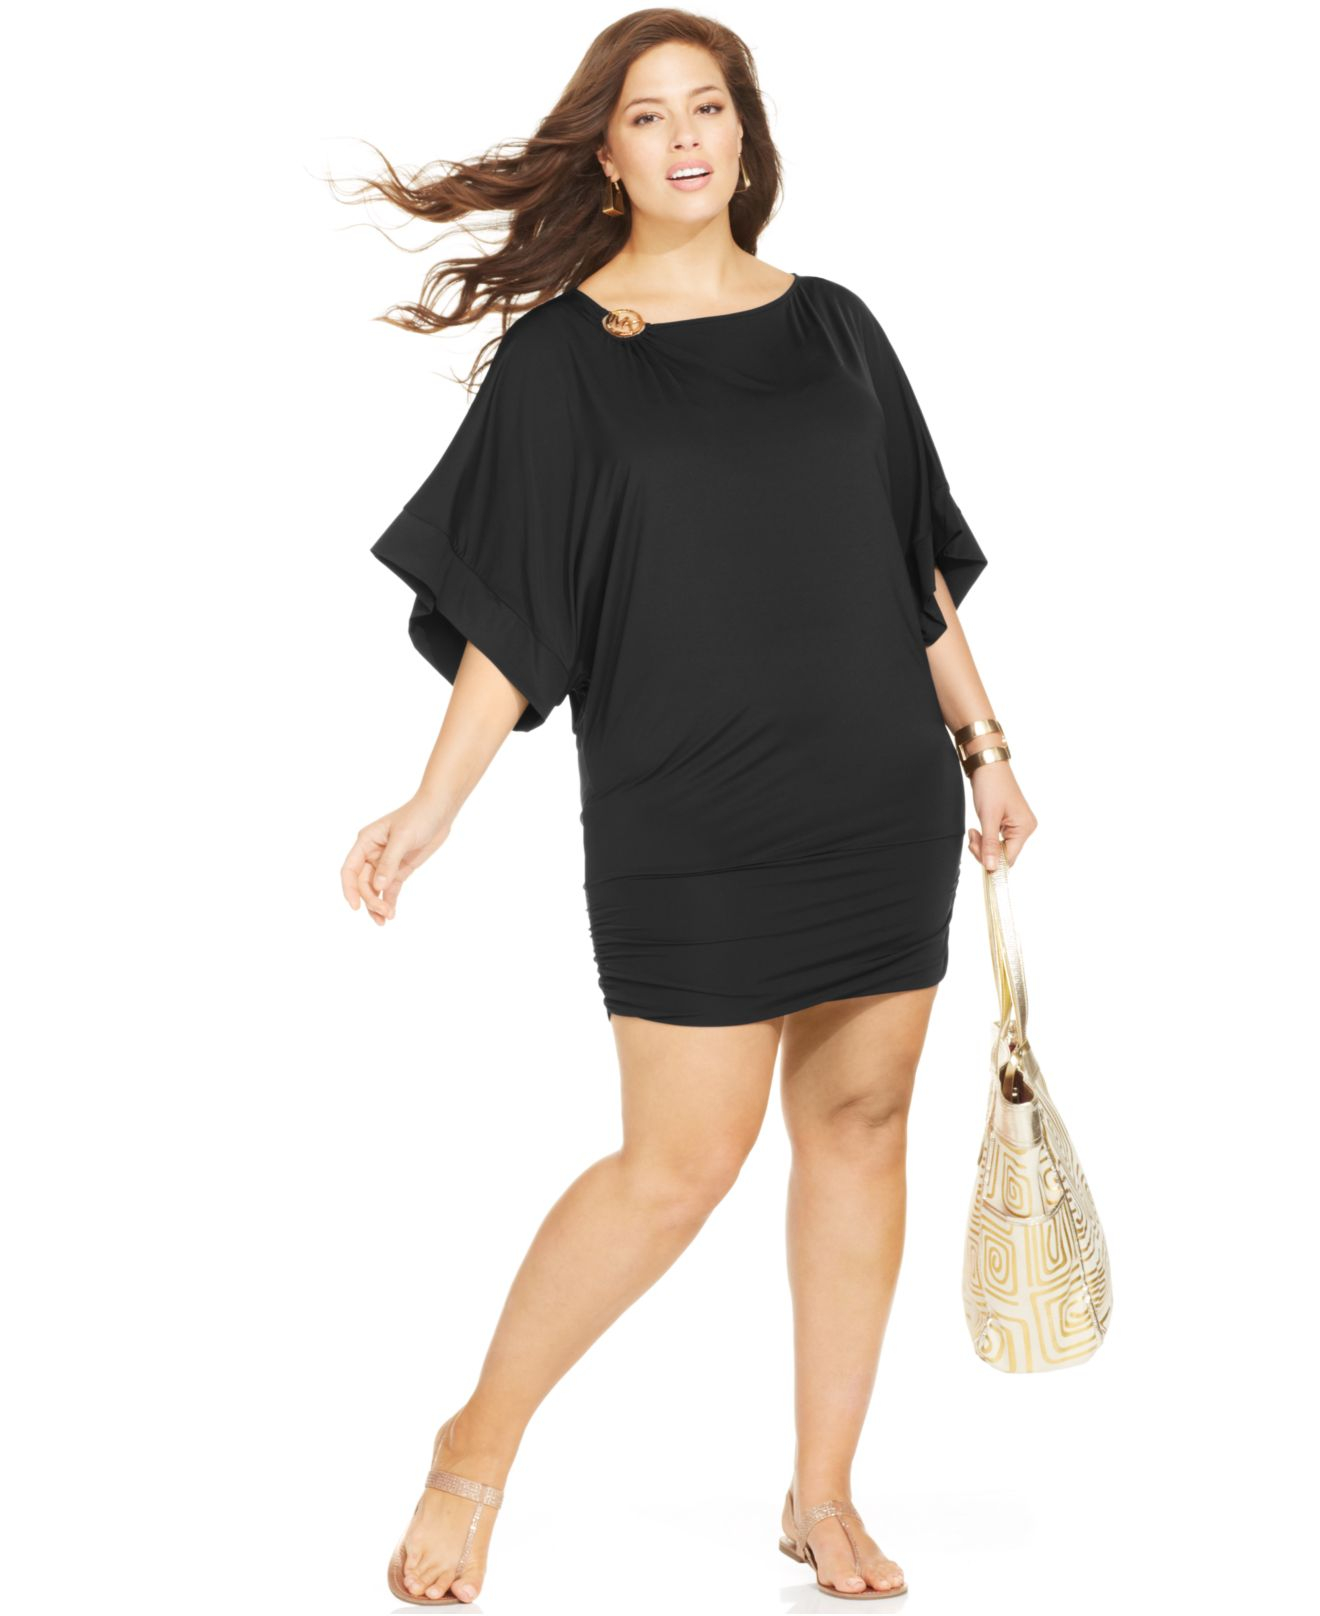 Michael kors Michael Plus Size Logo Banded Cover Up in Black | Lyst